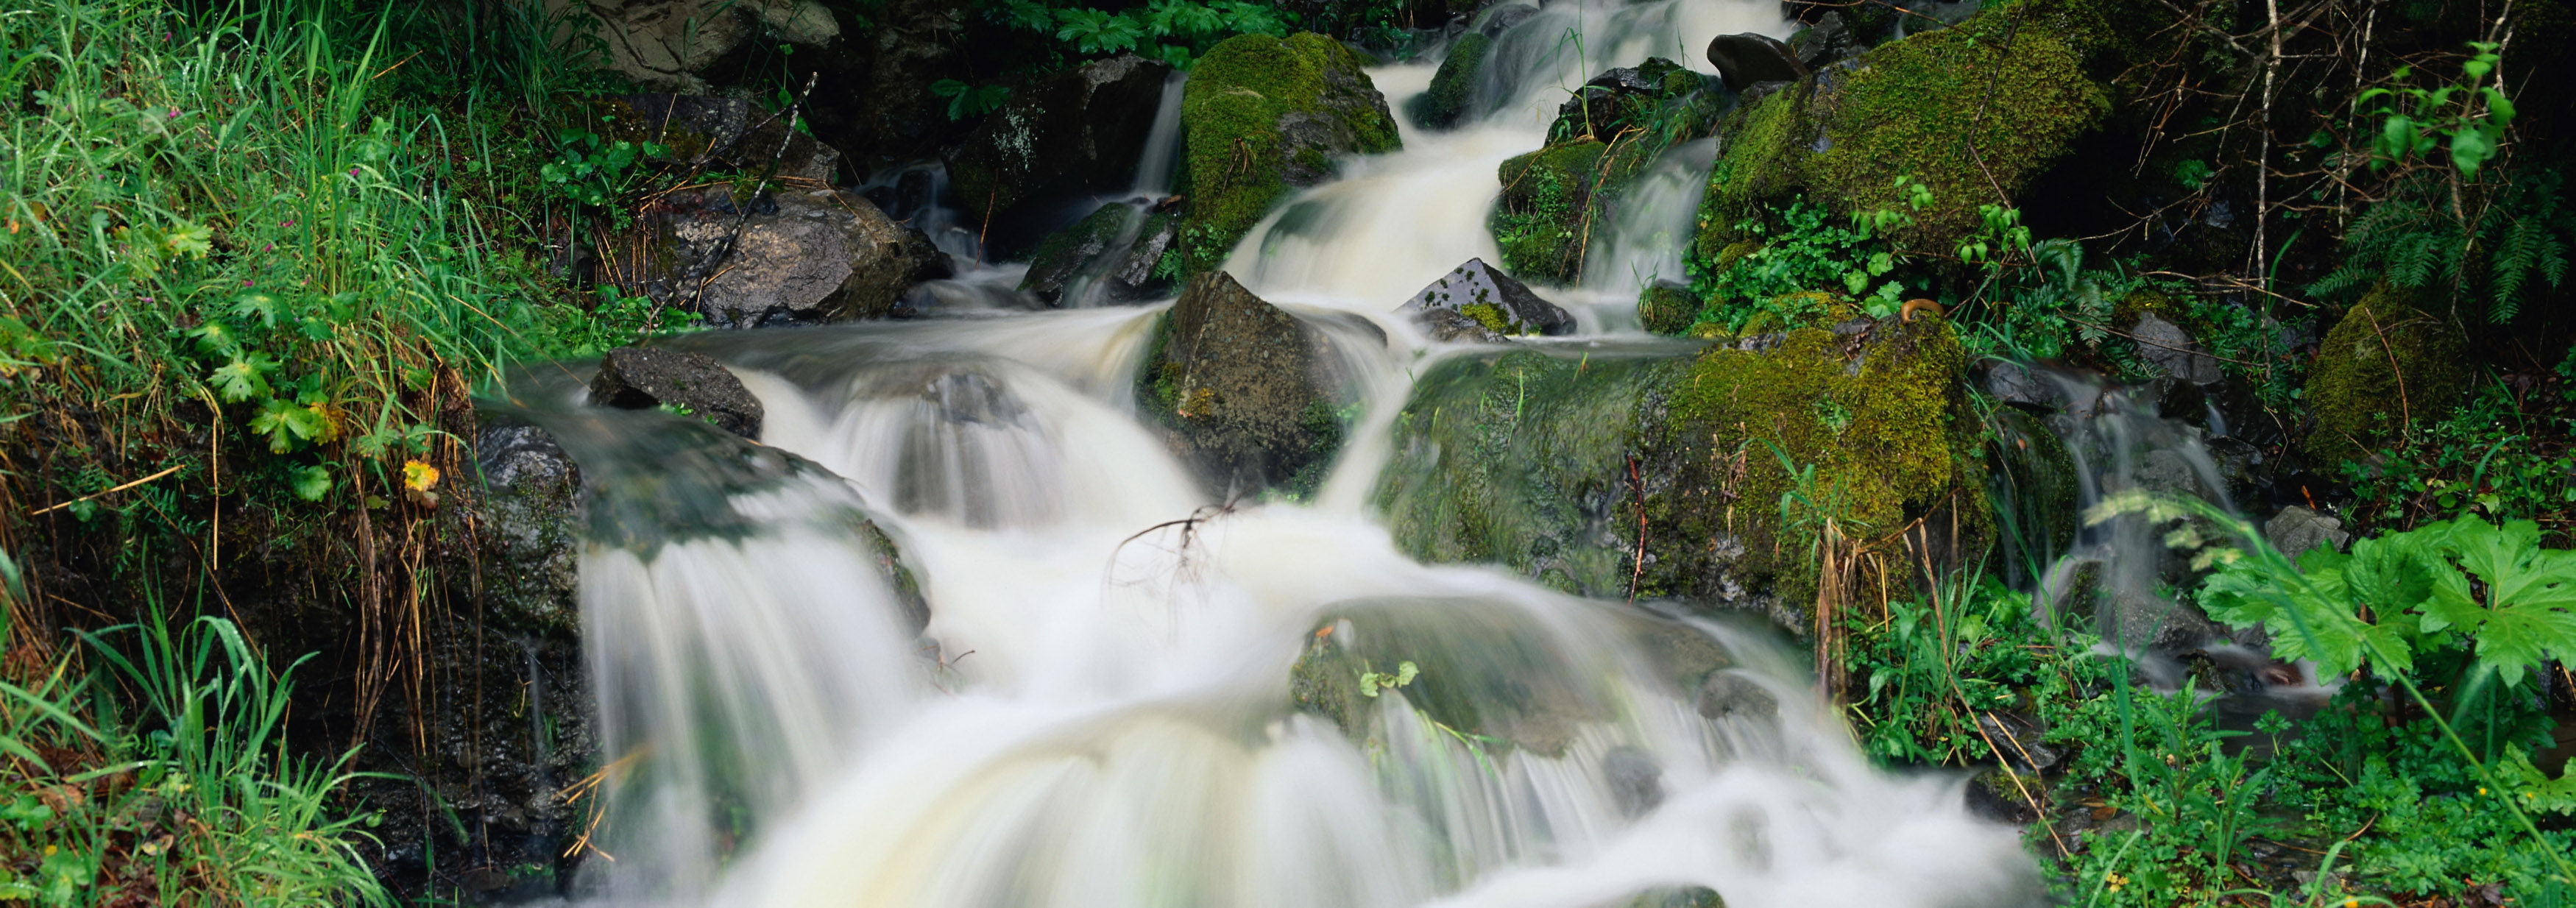 click to free download the wallpaper--natural scene photos - A River in Rpaid Flow, Green Stones Brushed Clean, is an Impressive Scene 3500X1234 free wallpaper download